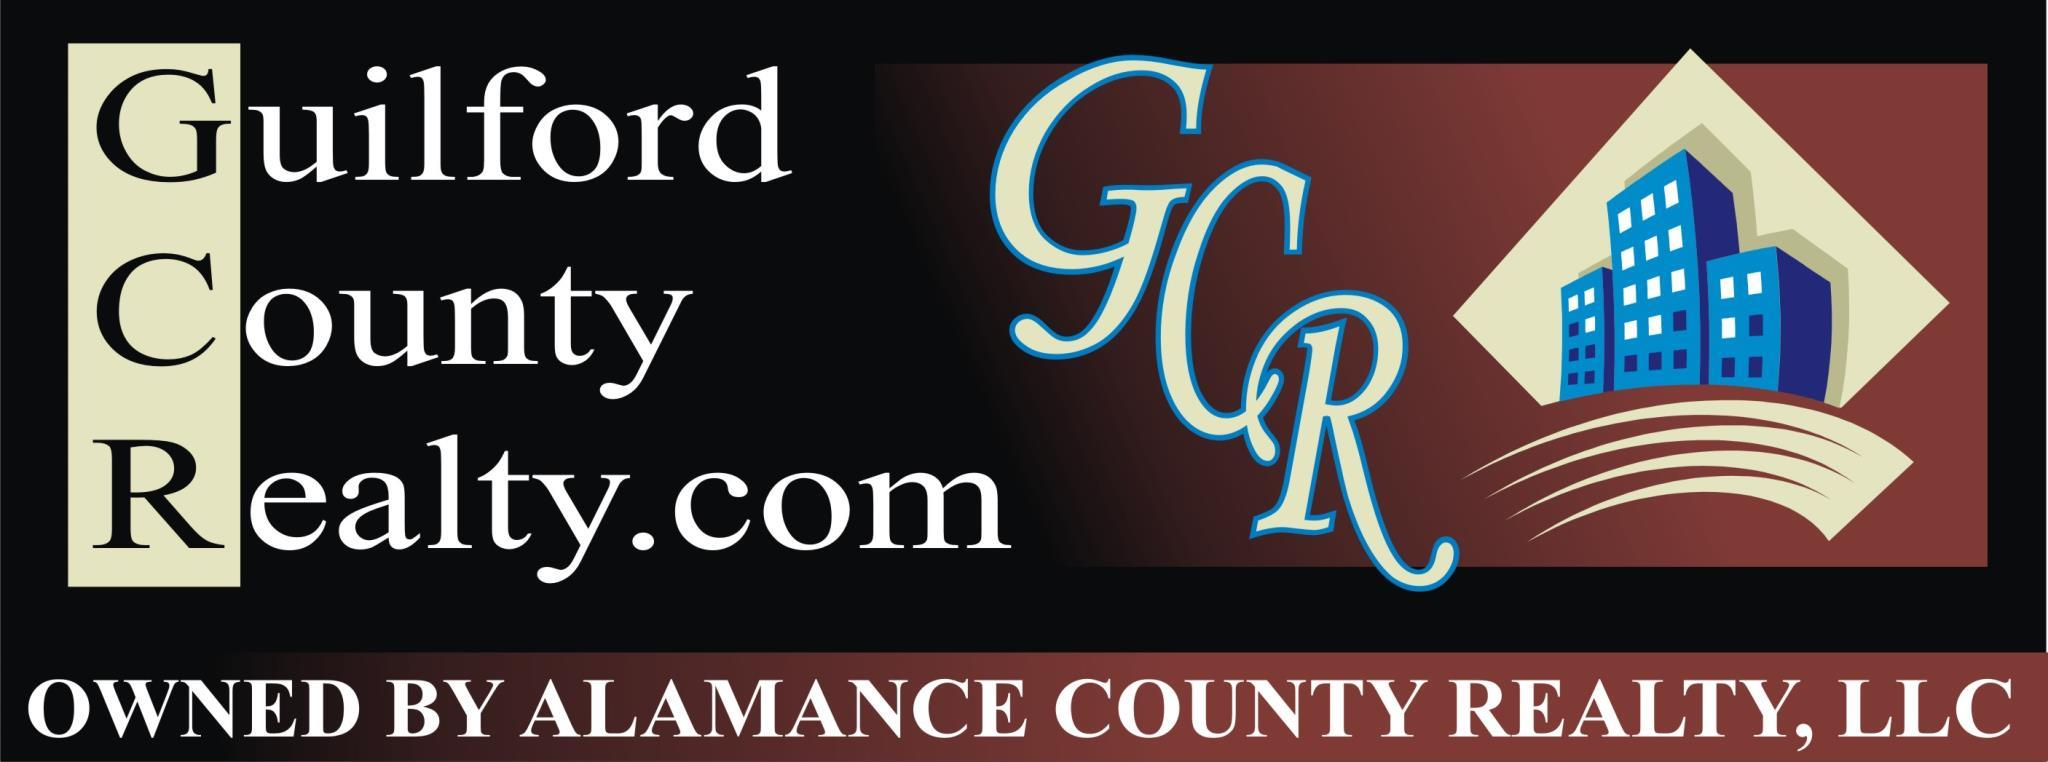 www.guilfordcountyrealty.com